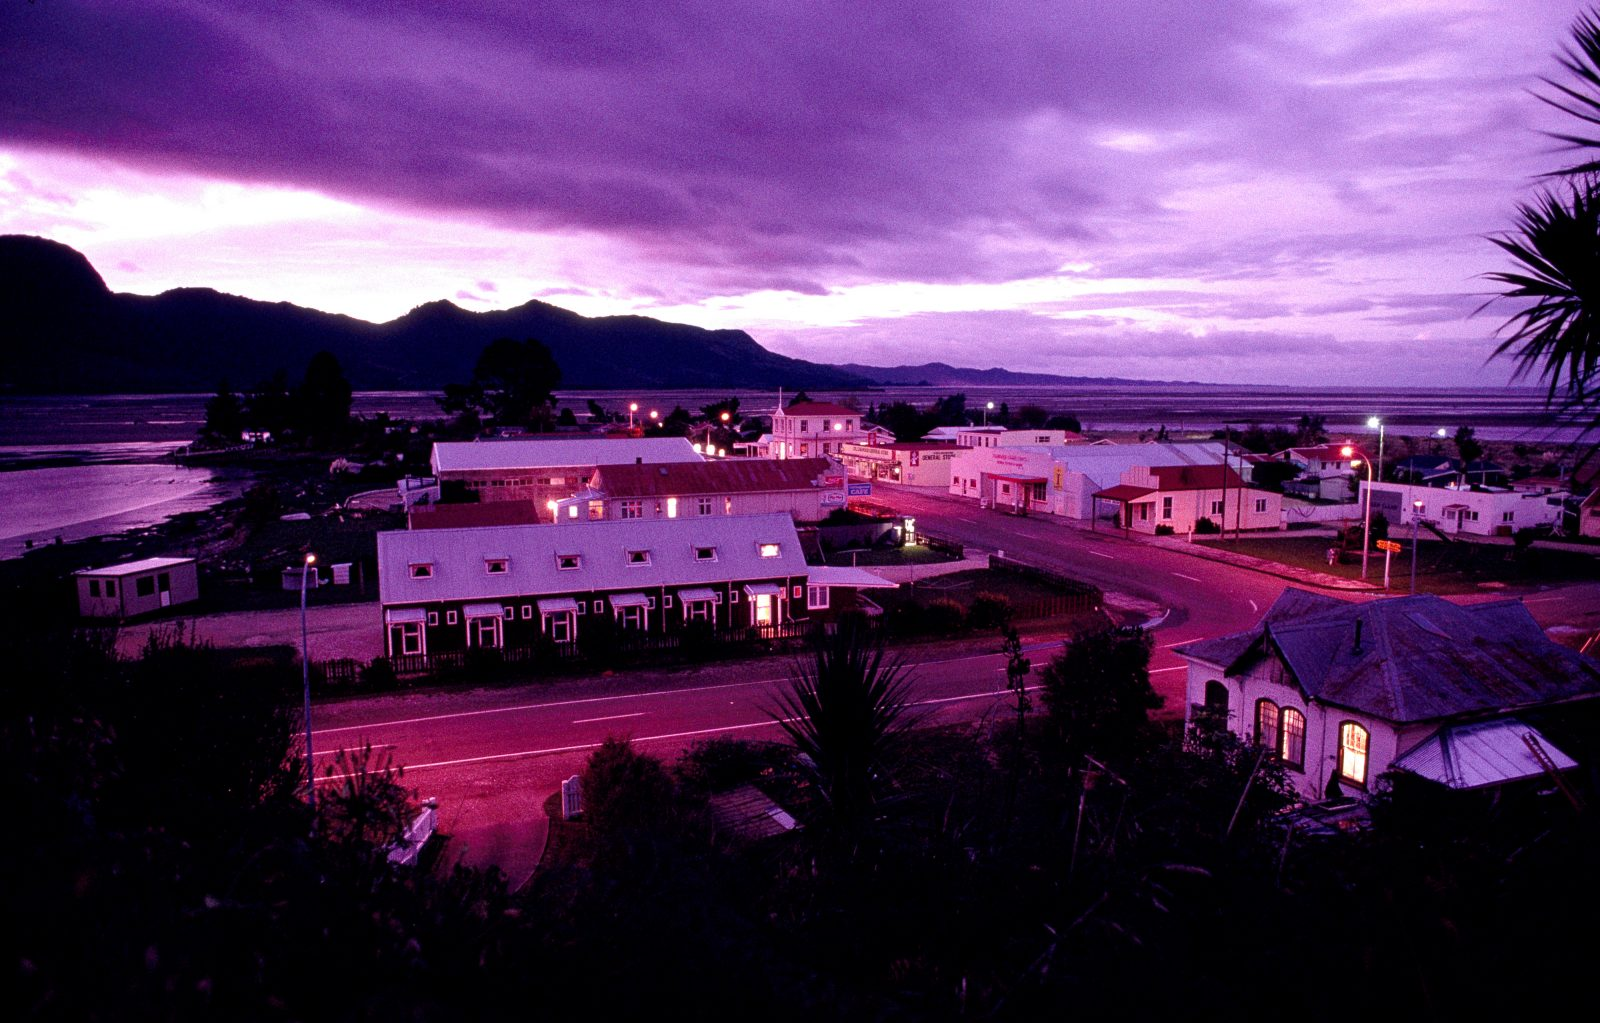 Collingwood, commercial centre of western Golden Bay, at dusk on an autumn evening.